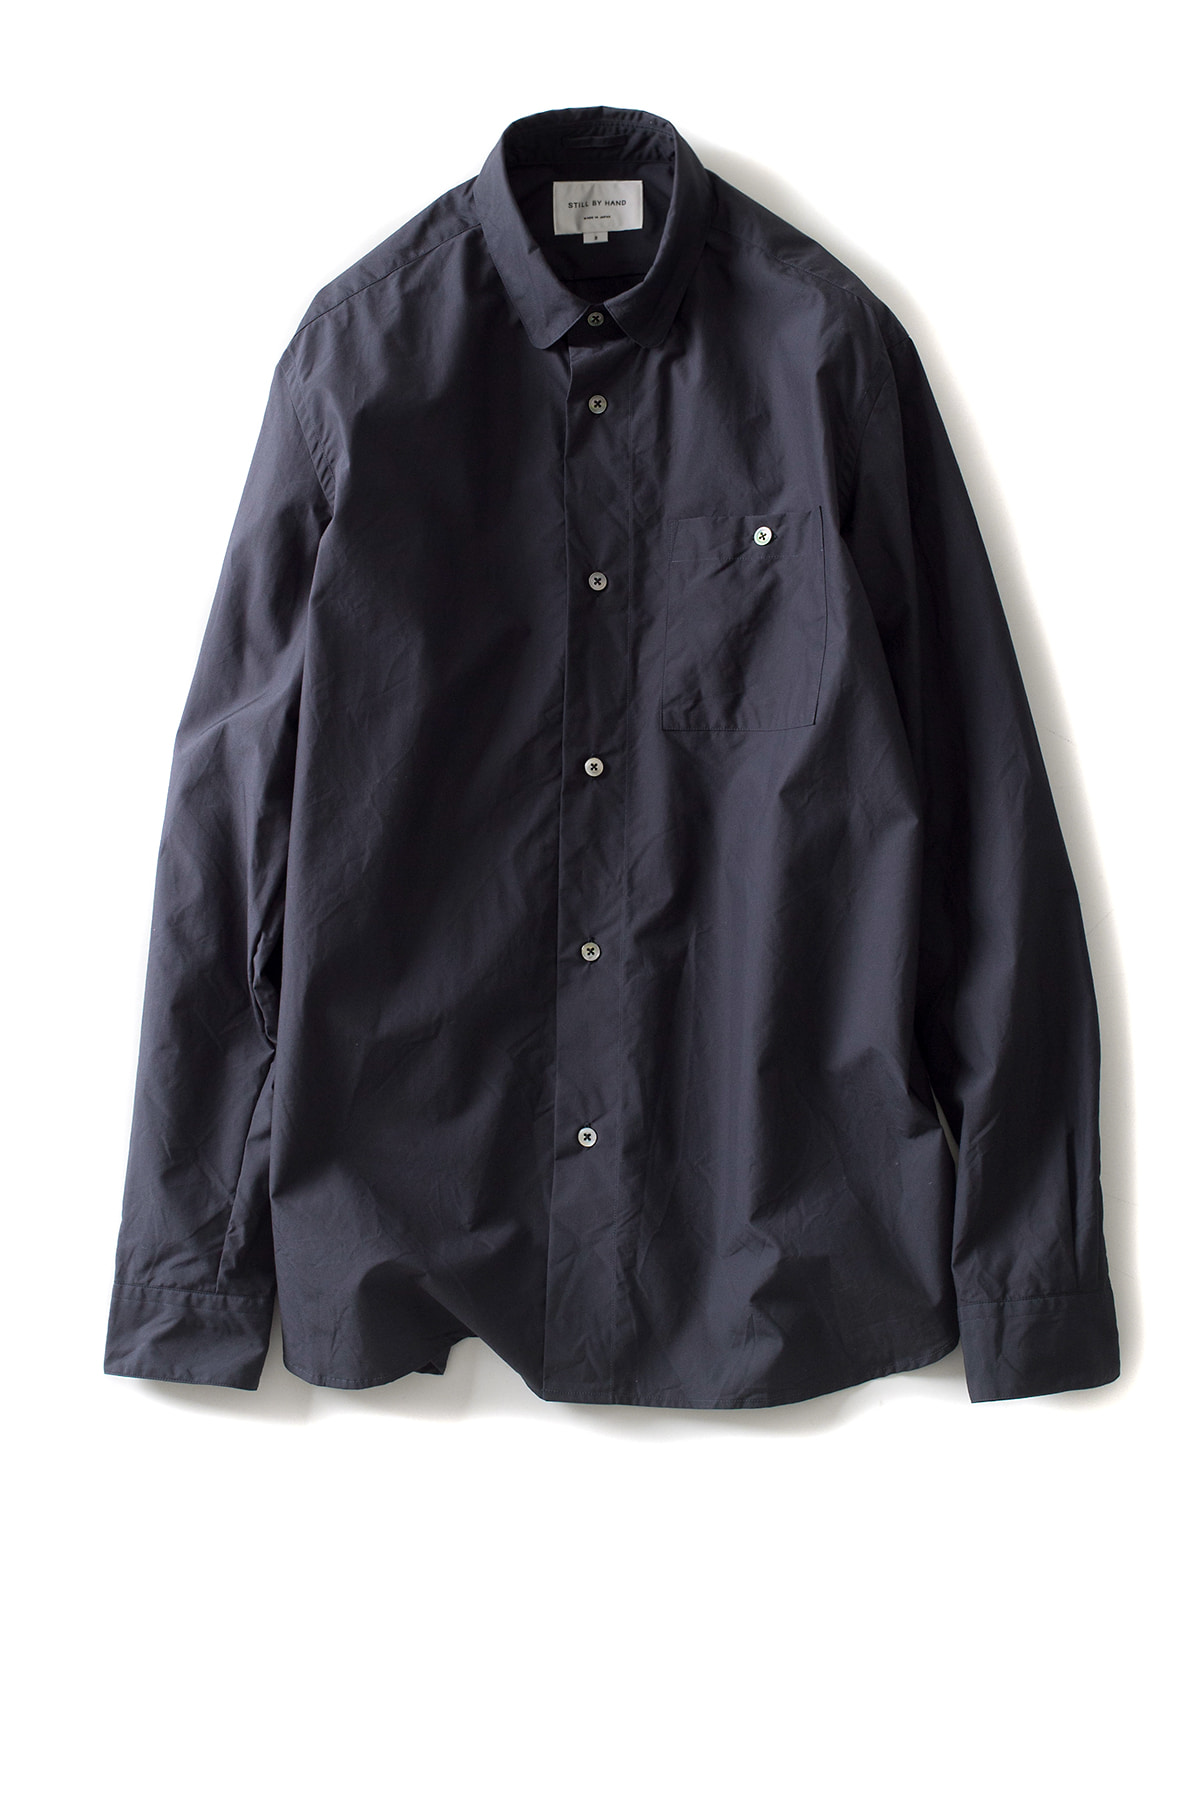 Still by Hand : Round Collar Shirt (Navy)